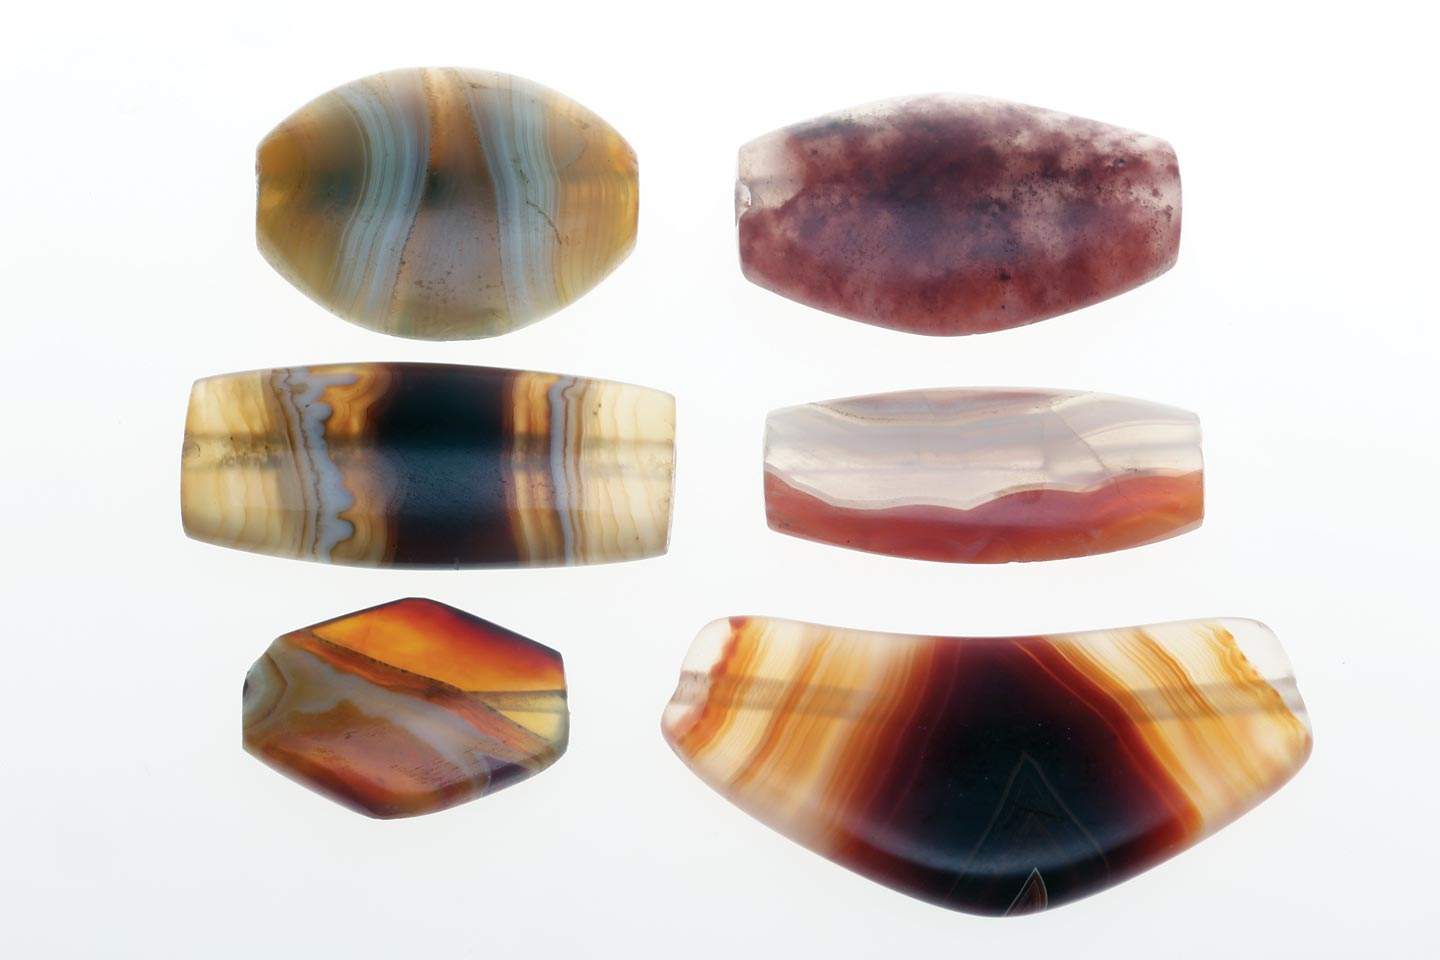 FOUR ANCIENT TABULAR/LENTICULAR HARD STONE BEADS FROM AFGHANISTAN AND TWO REPLICA AGATE BEADS; these carnelian and agate tabular beads are very similar to Mesopotamian third millennium beads, 2.8 - 3.5 centimeters long, 0.6 - 0.9 centimeters thick.  Courtesy of Anahita Gallery and J. Lafortune, 1978.  Two lowest beads are new replica tabular agate and leech beads from Iran and Cambay, 0.6 - 1.0 centimeters thick;  Courtesy of W. Seifried, 2006 and Beadazzled/Kamol, 1999.  Due to better lapidary equipment, especially drills, many replica beads are now thinner than the prototypes.  Photographs by Robert K. Liu/ Ornament ; shot with studio strobes, using softboxes   for both transillumination/reflected lighting or just reflective lighting when shooting on black Tufflock.